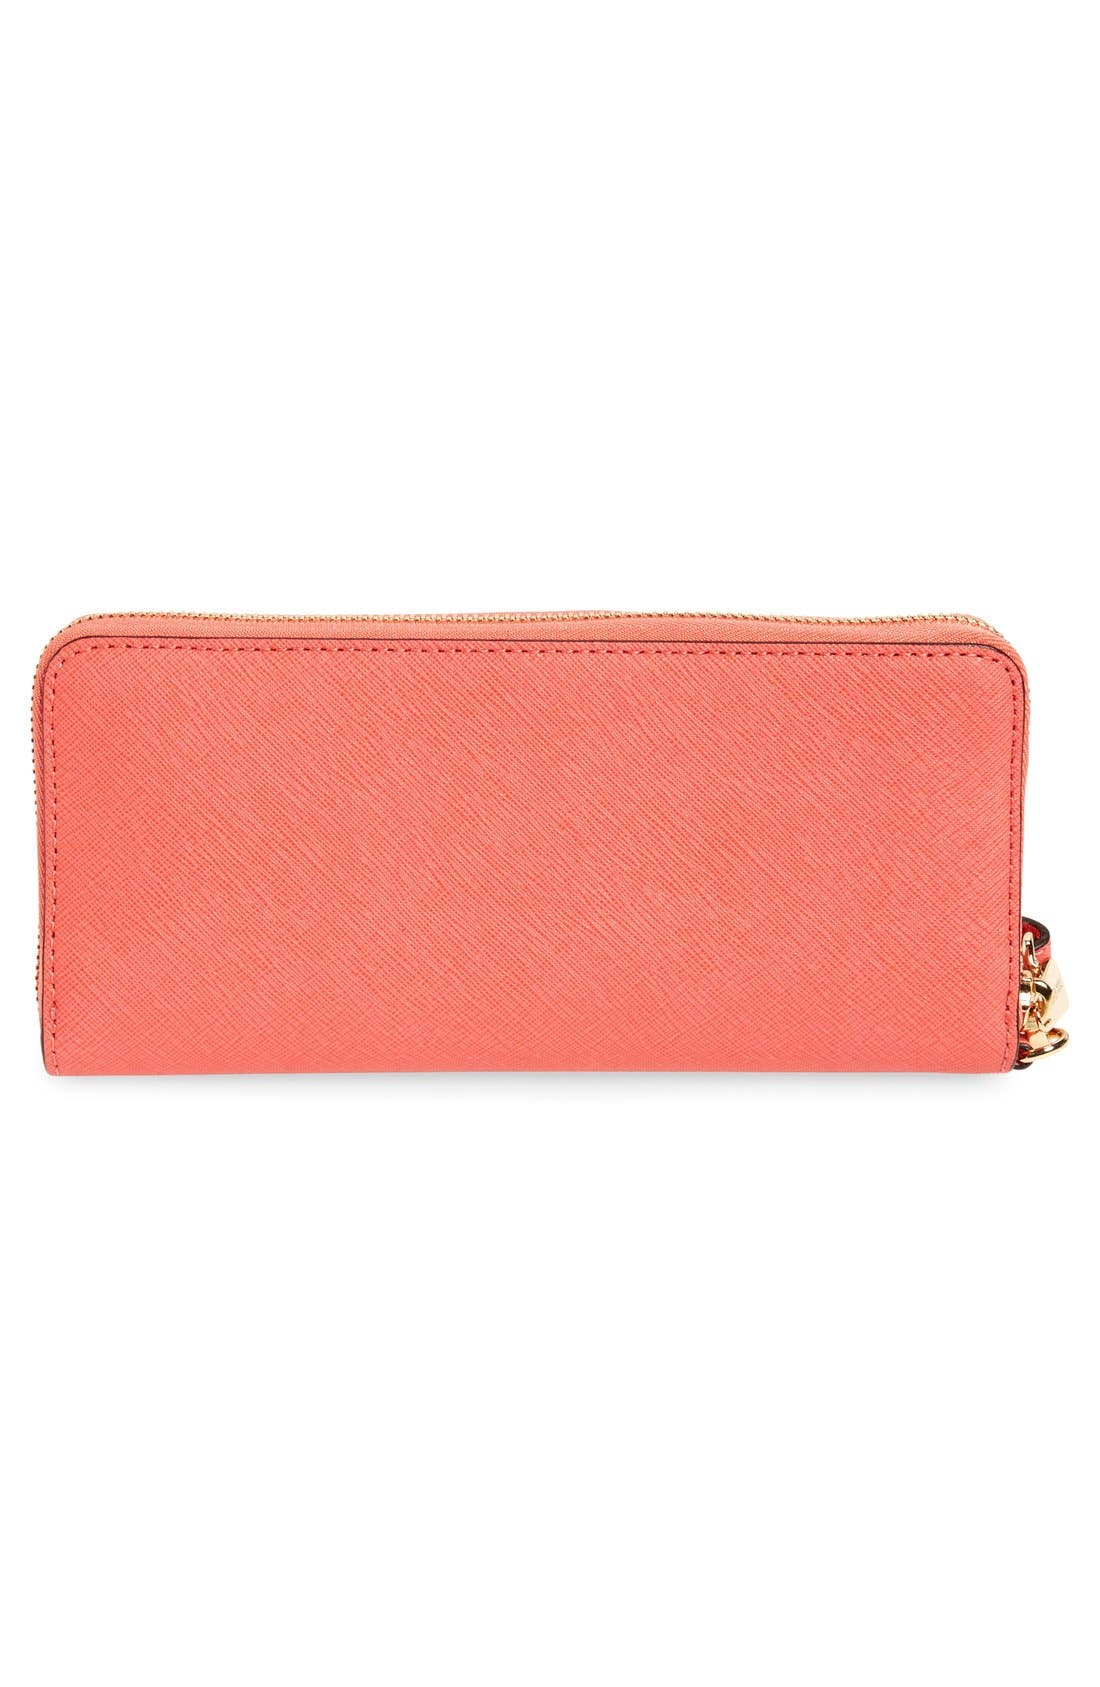 'Jet Set' Leather Travel Wallet,                             Alternate thumbnail 41, color,